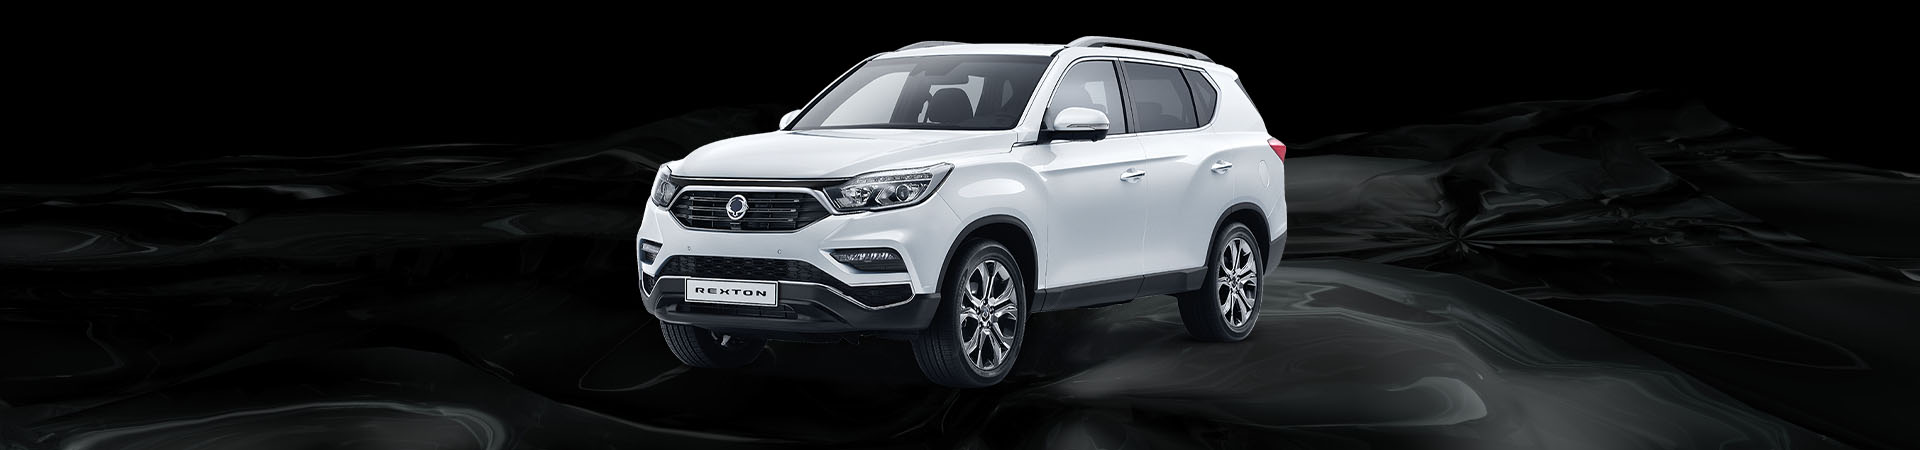 Auto servis Beograd | Ssang Yong